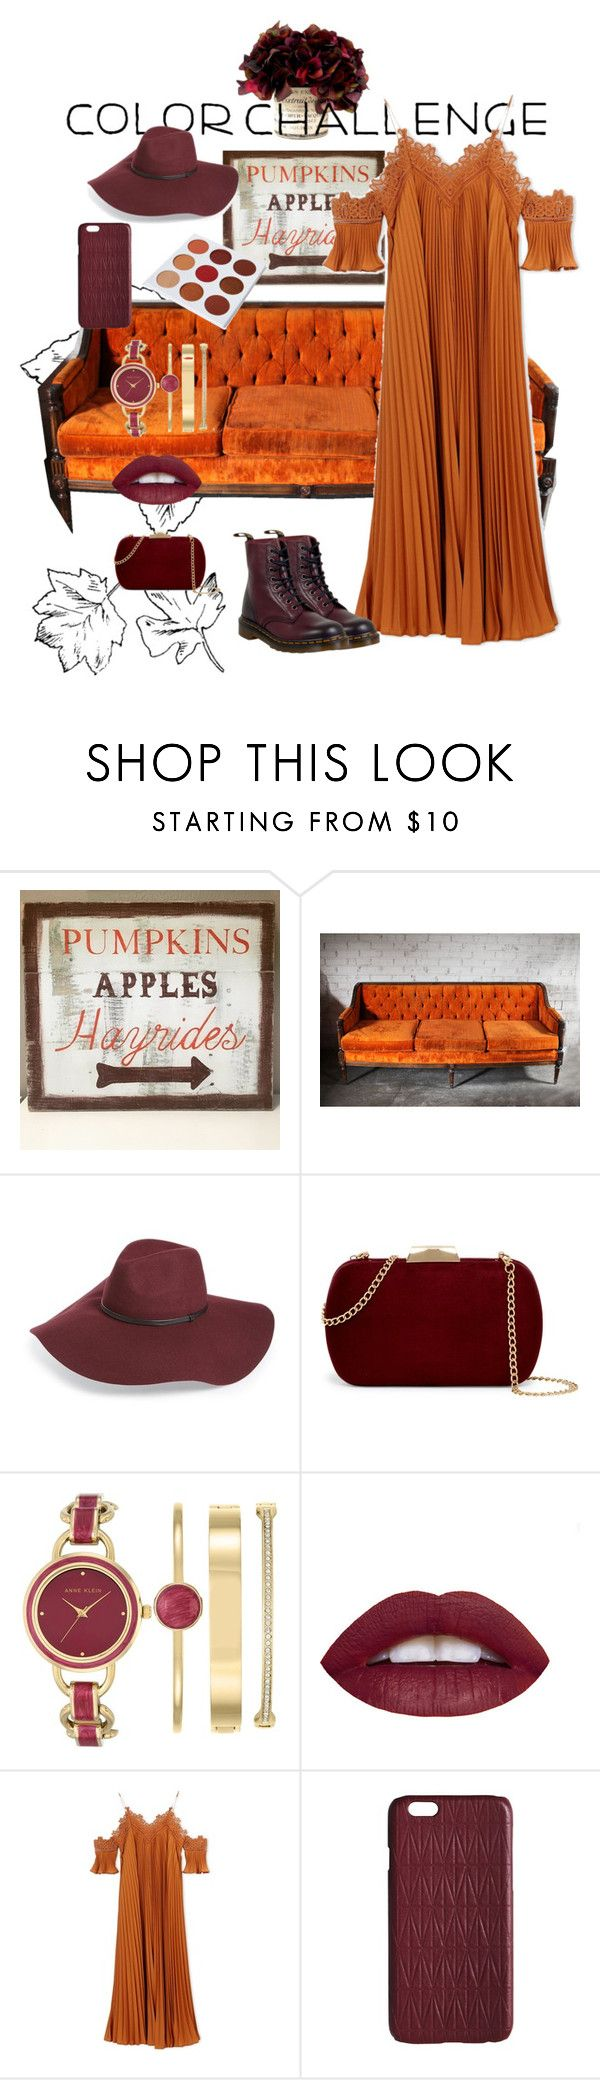 """Cose arancio"" by ramonapi ❤ liked on Polyvore featuring WALL, Halogen, Natasha Accessories, Anne Klein, self-portrait, Dagmar, Dr. Martens, colorchallenge and pumpkinandburgundy"